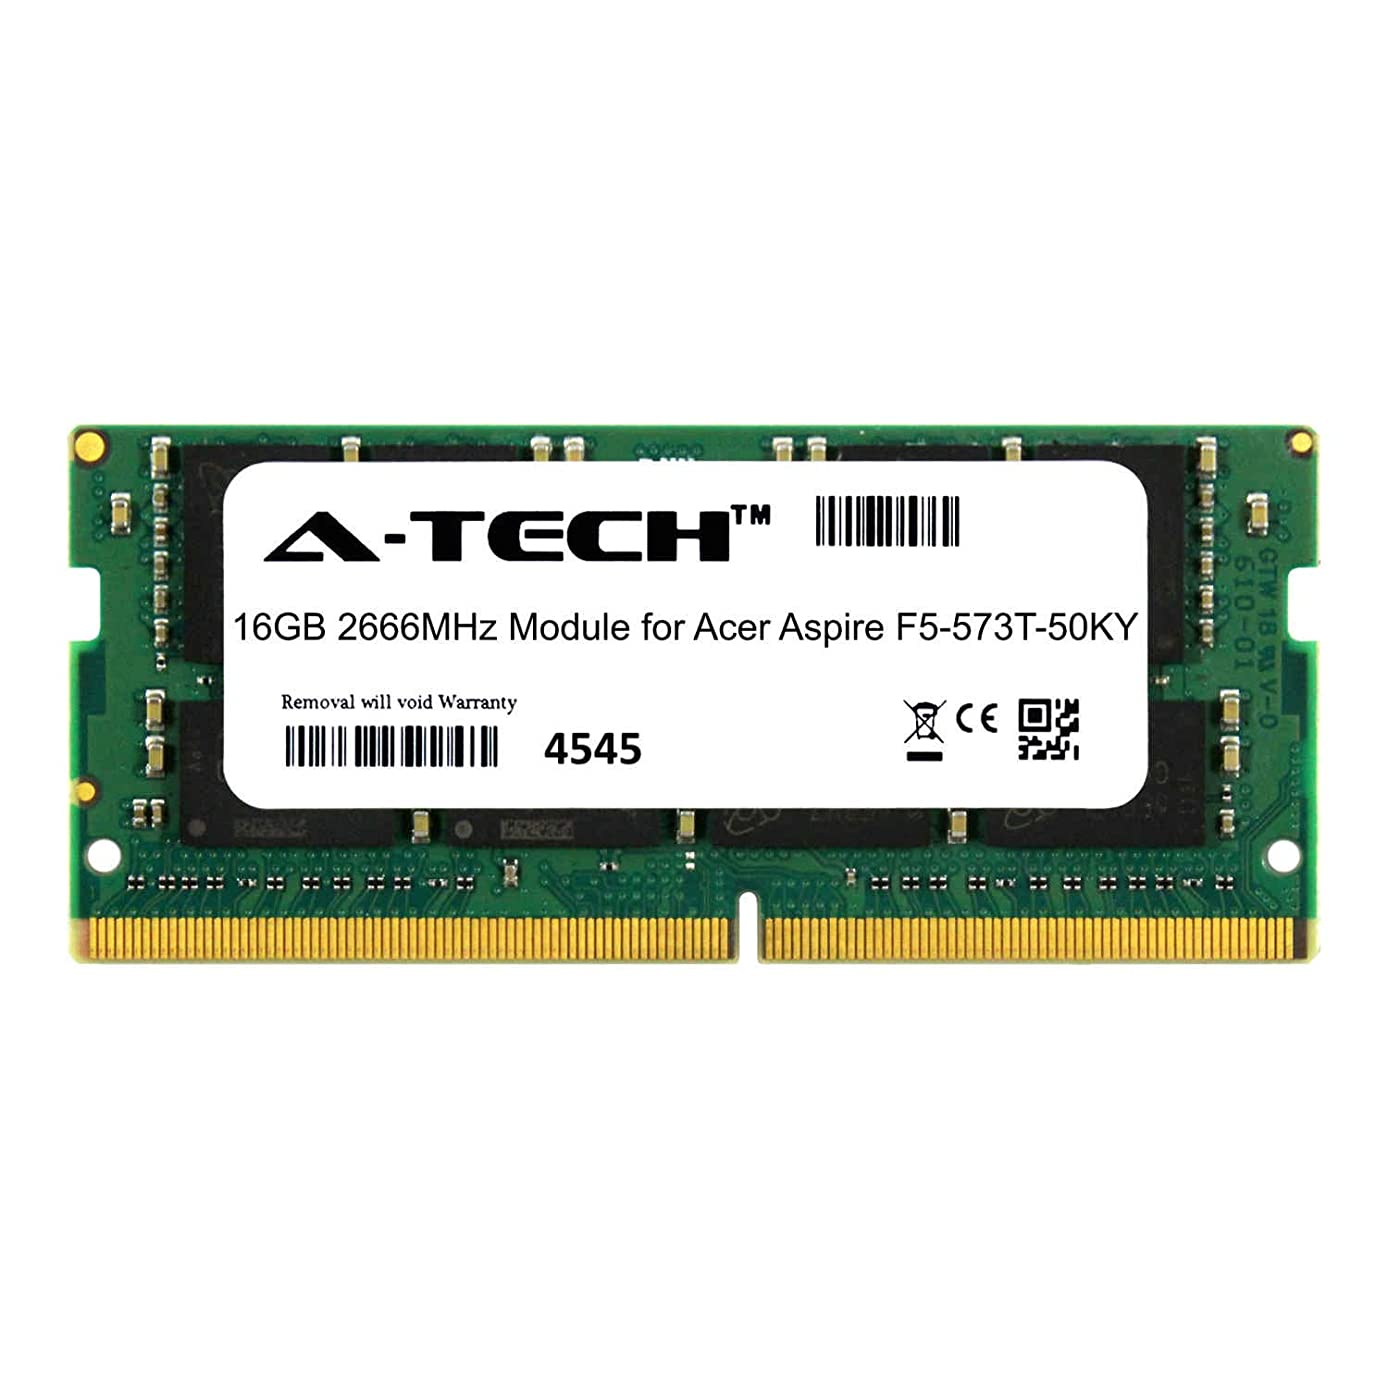 A-Tech 16GB Module for Acer Aspire F5-573T-50KY Laptop & Notebook Compatible DDR4 2666Mhz Memory Ram (ATMS267476A25832X1)